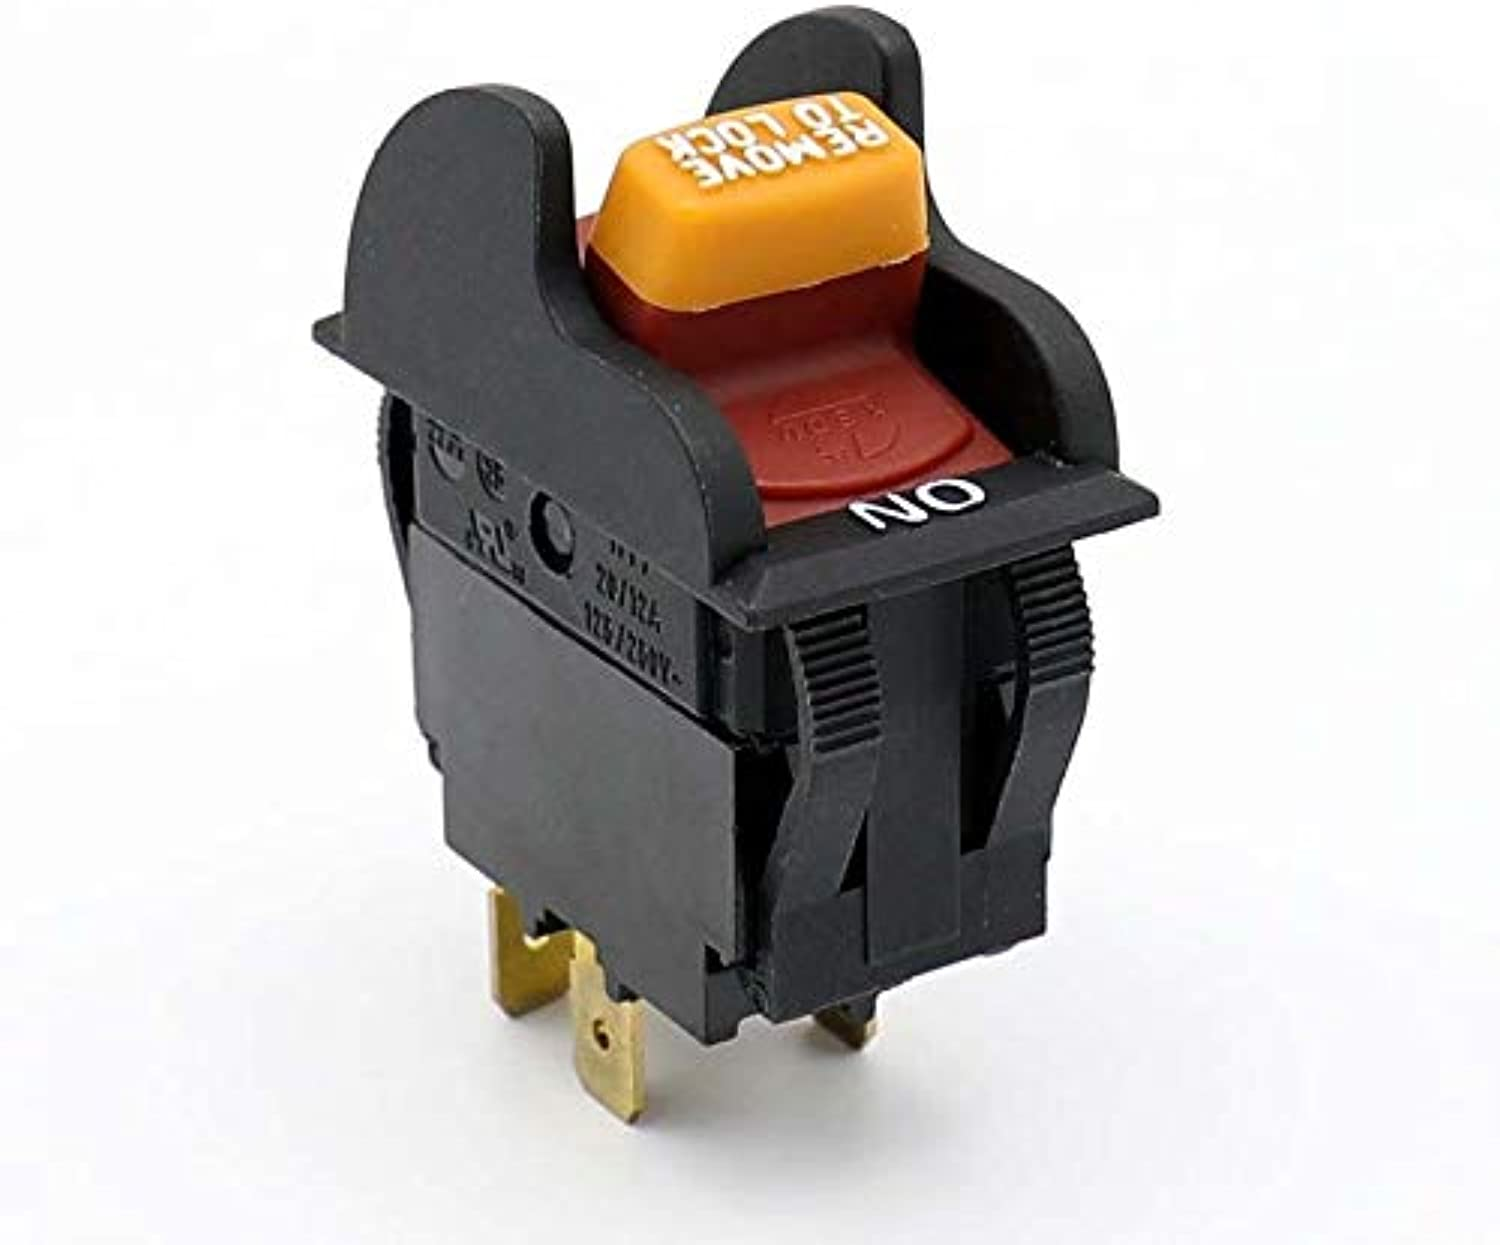 HY7 20A 12A 125V 250VAC Waterproof Industrial Electric Key Switches for Electric Power Tools